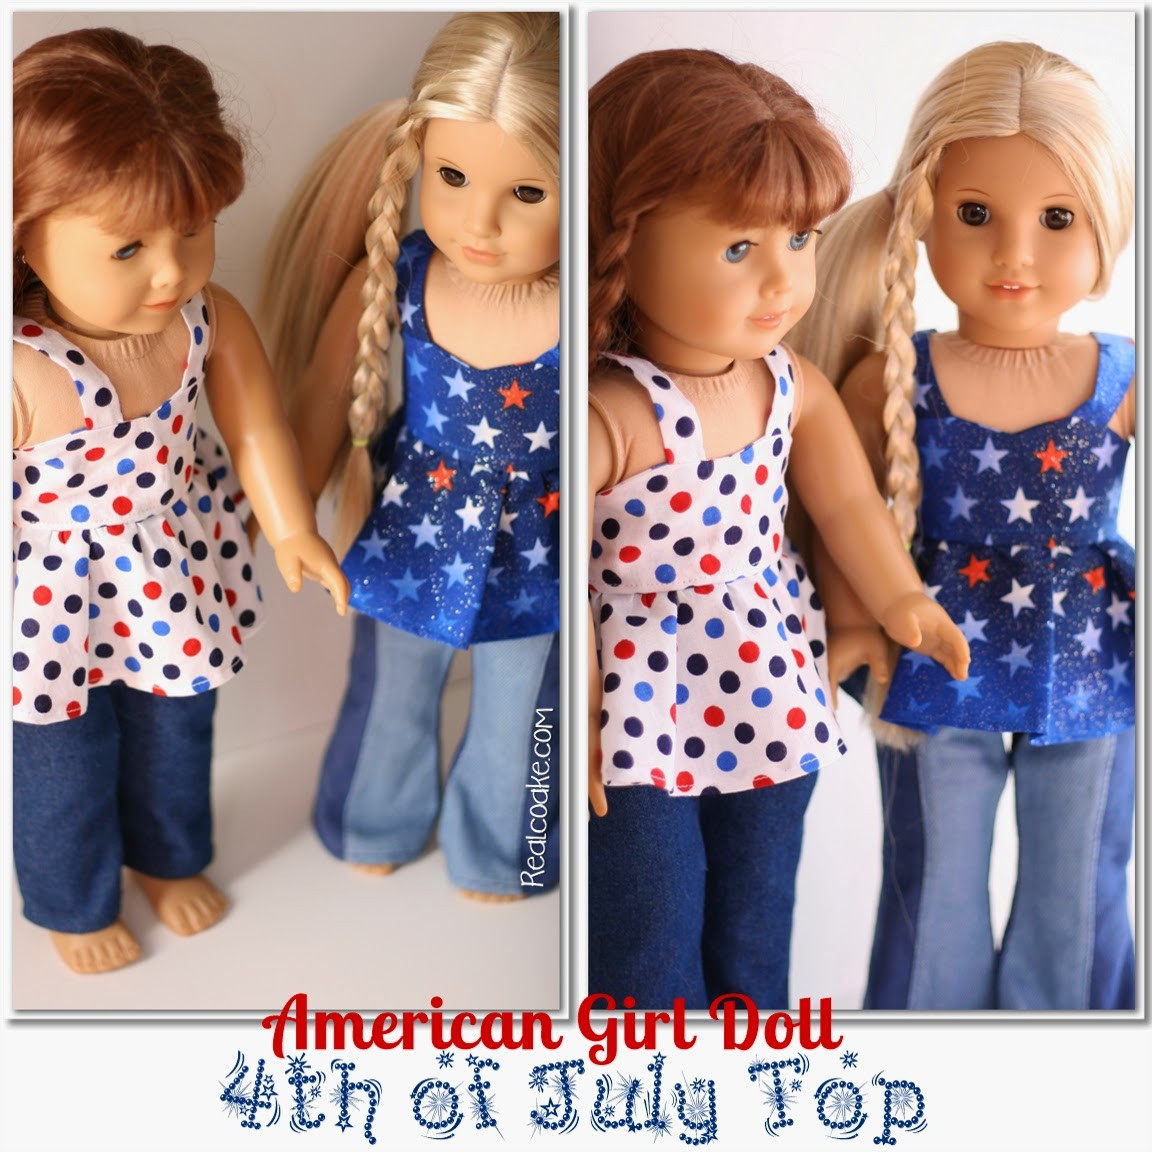 Inspirational American Girl Doll 4th Of July top Free Doll Clothes Pattern Free American Girl Doll Clothes Patterns Of Lovely 49 Models Free American Girl Doll Clothes Patterns